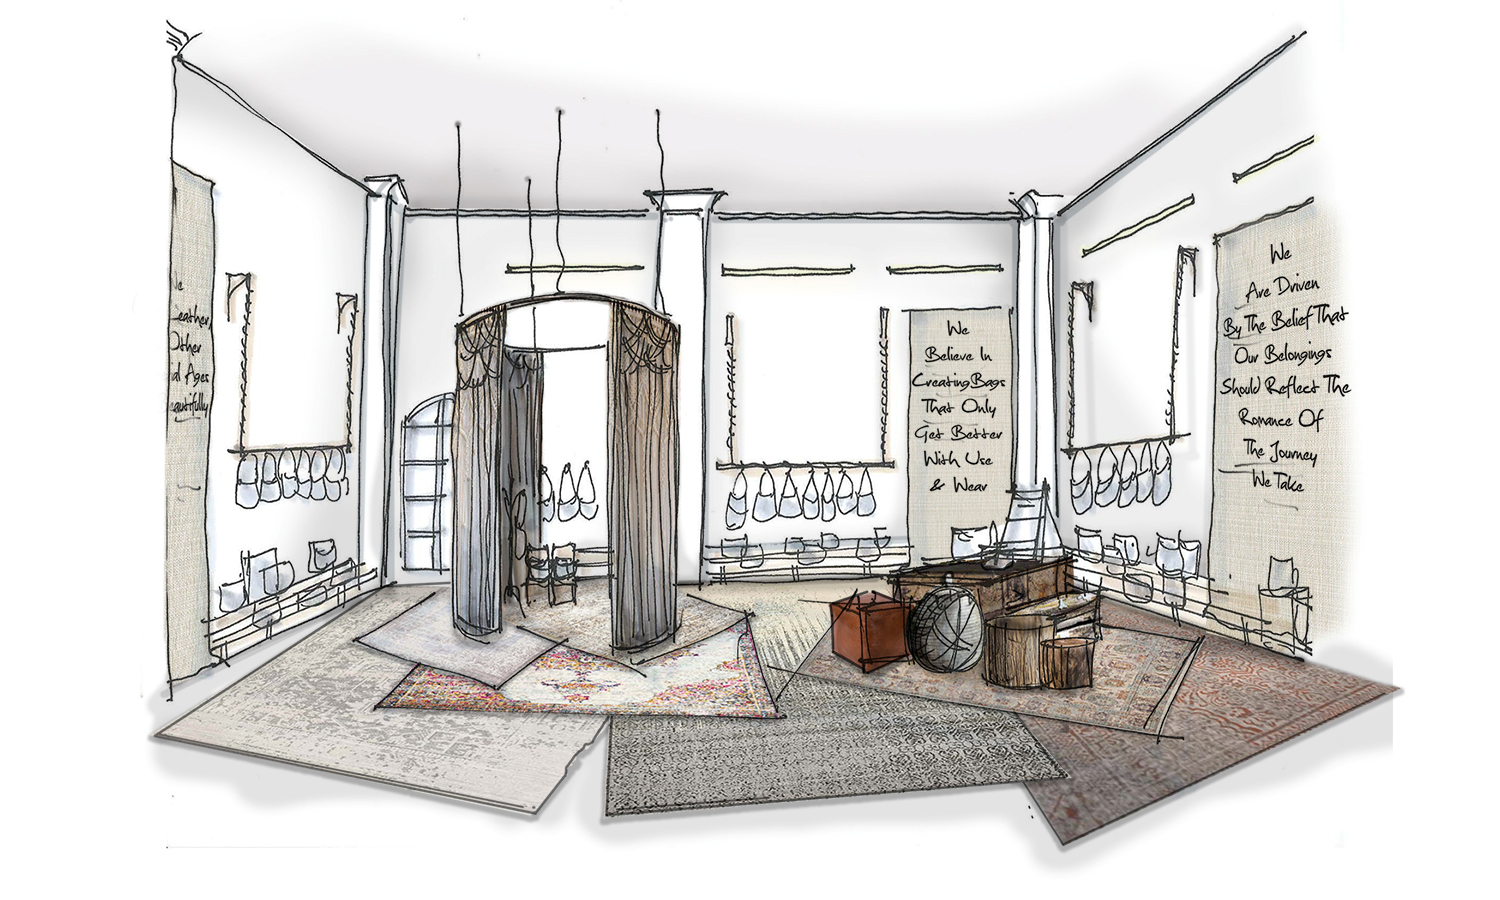 A rendering of the Leather Lounge pop-up.